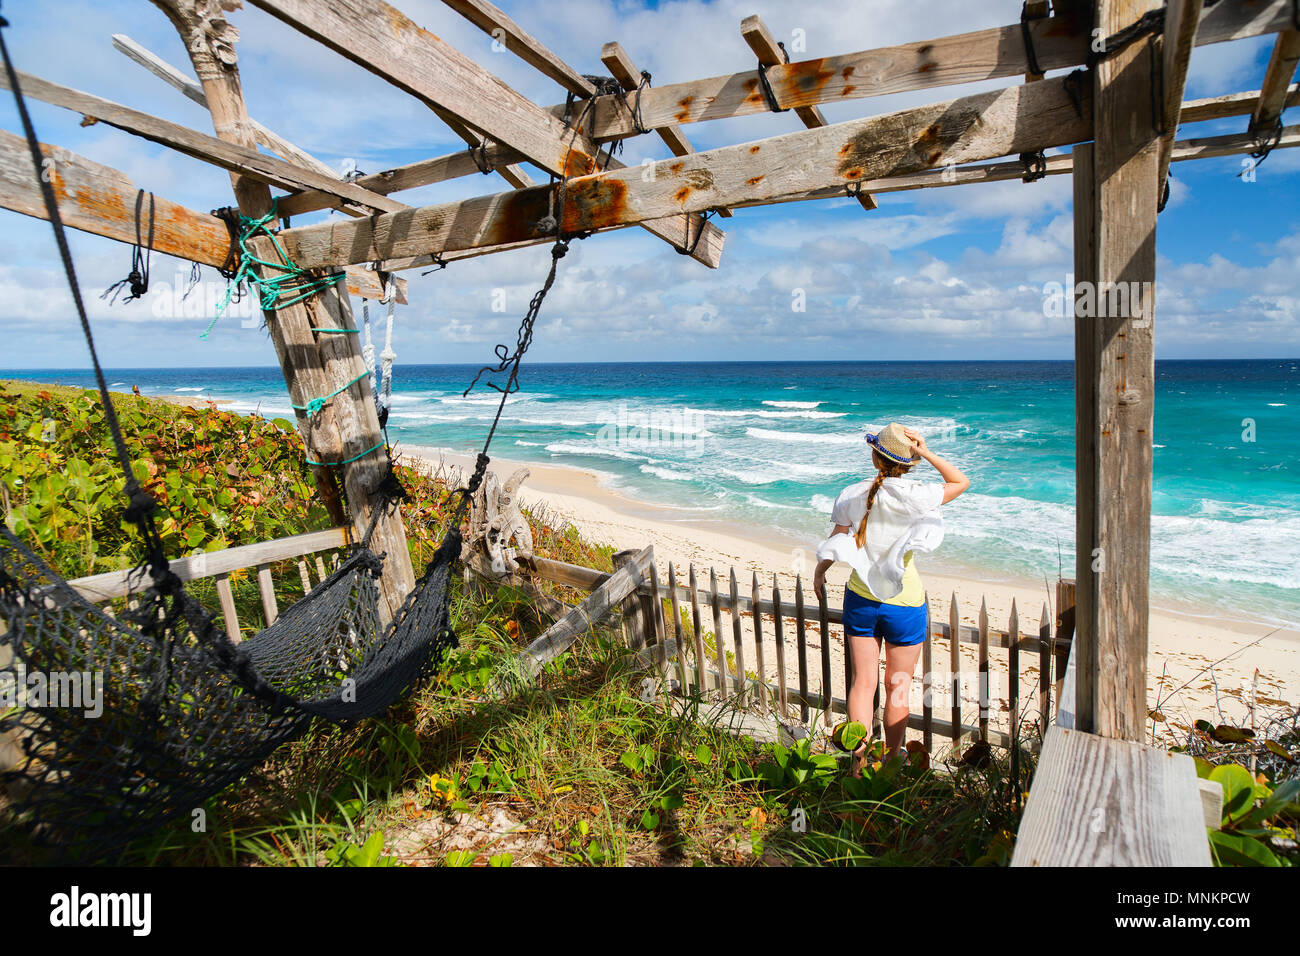 Young woman enjoying view of tropical beach on Eleuthera Bahamas - Stock Image